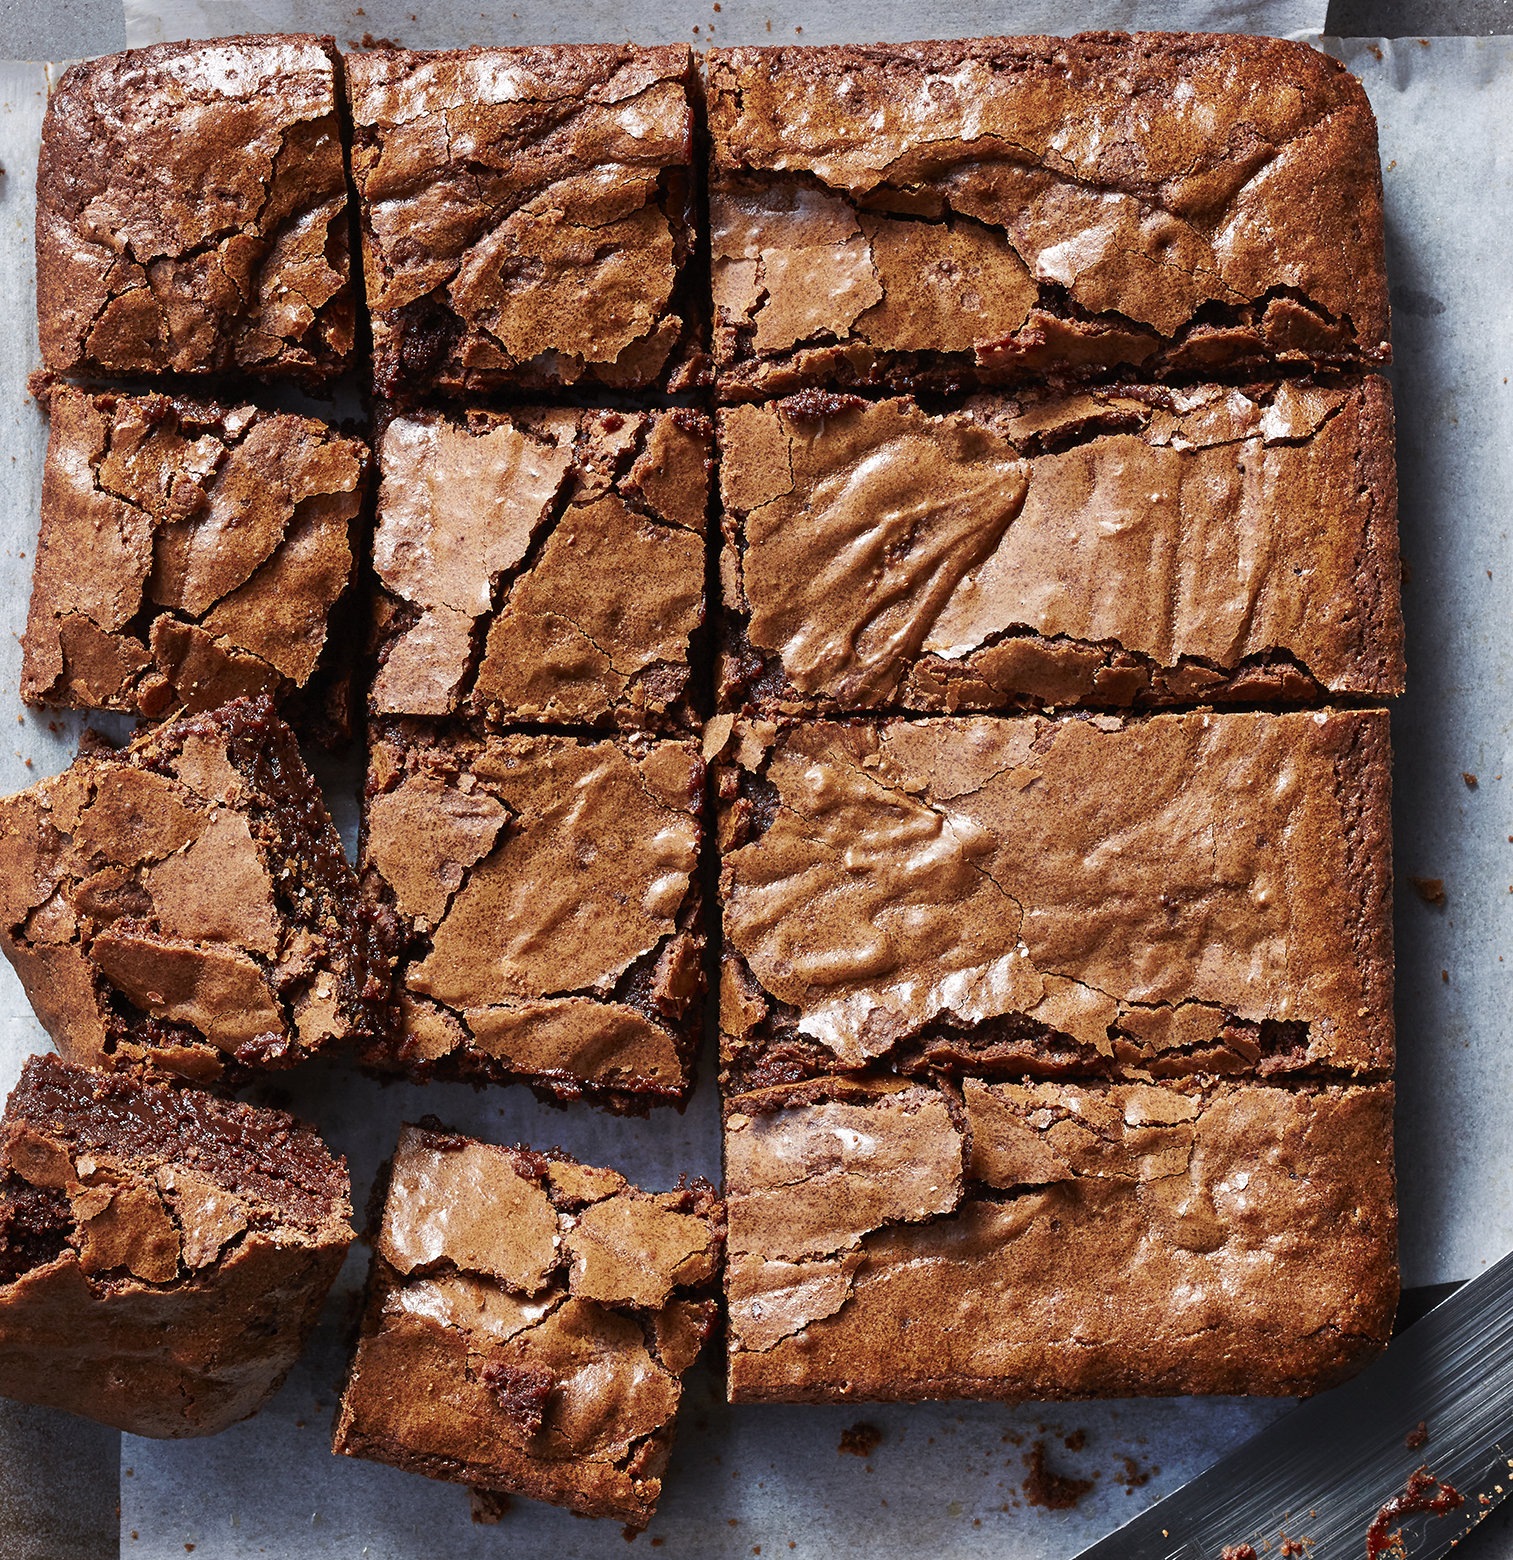 Le brownie fudgy le plus gourmand!